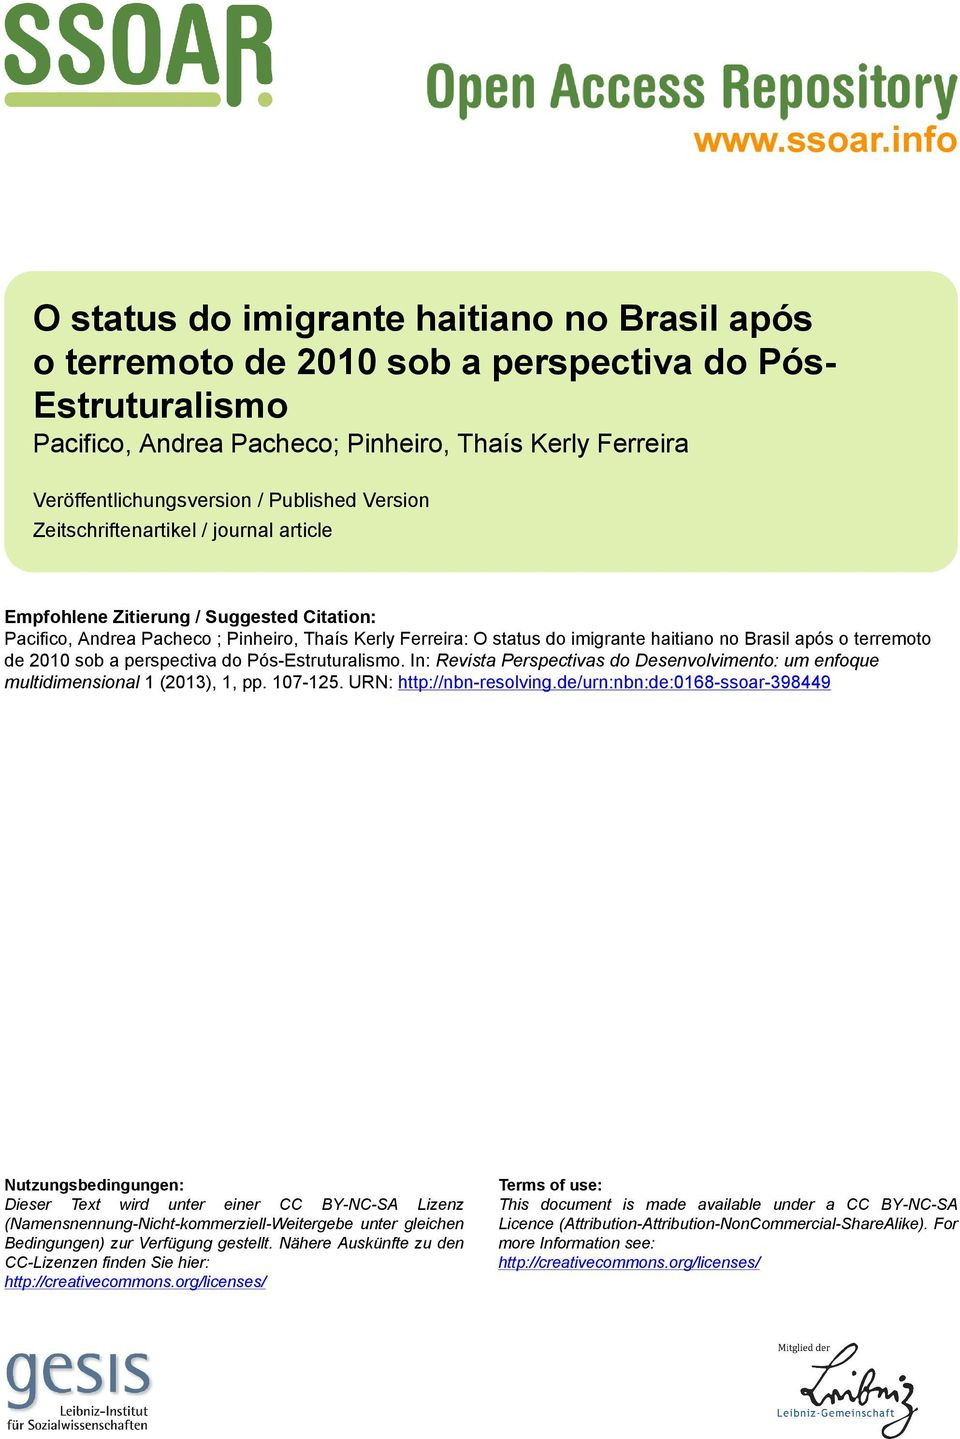 Published Version Zeitschriftenartikel / journal article Empfohlene Zitierung / Suggested Citation: Pacifico, Andrea Pacheco ; Pinheiro, Thaís Kerly Ferreira: O status do imigrante haitiano no Brasil